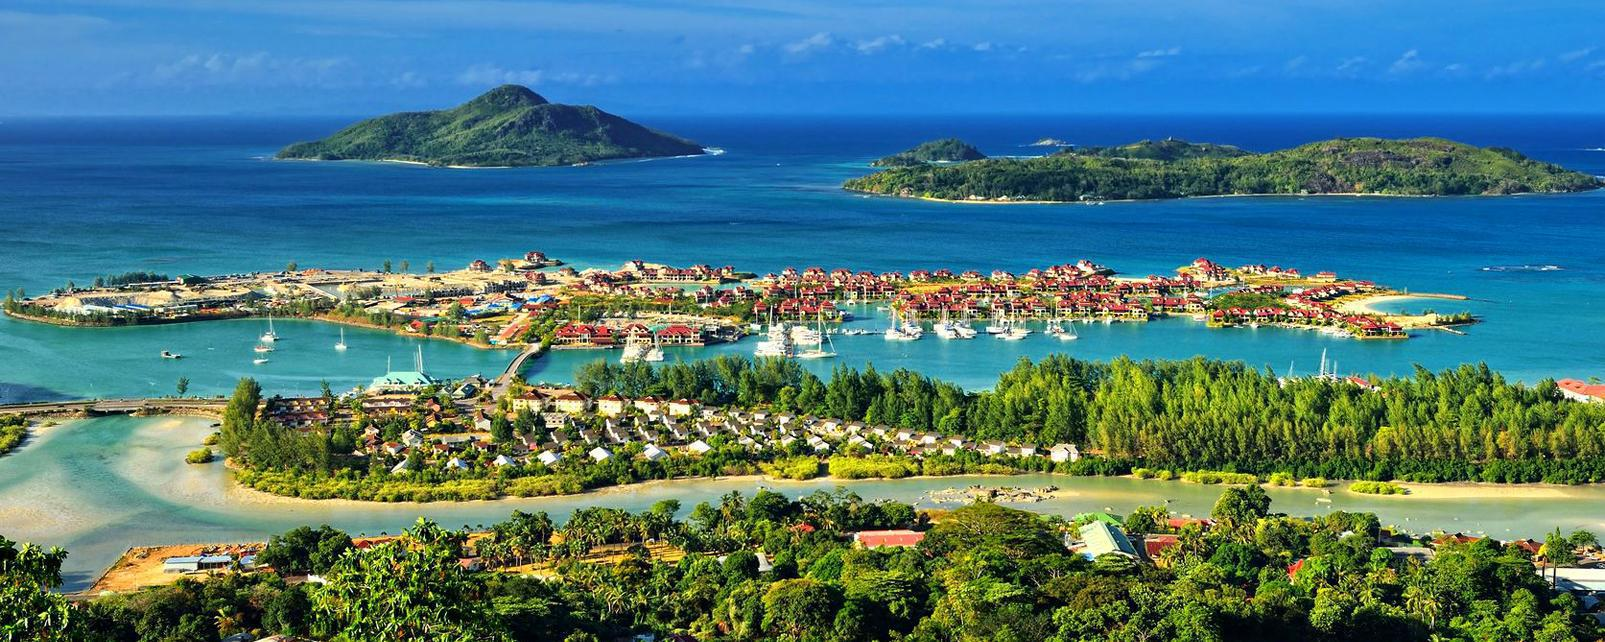 Travel To Seychelles Discover Seychelles With Easyvoyage